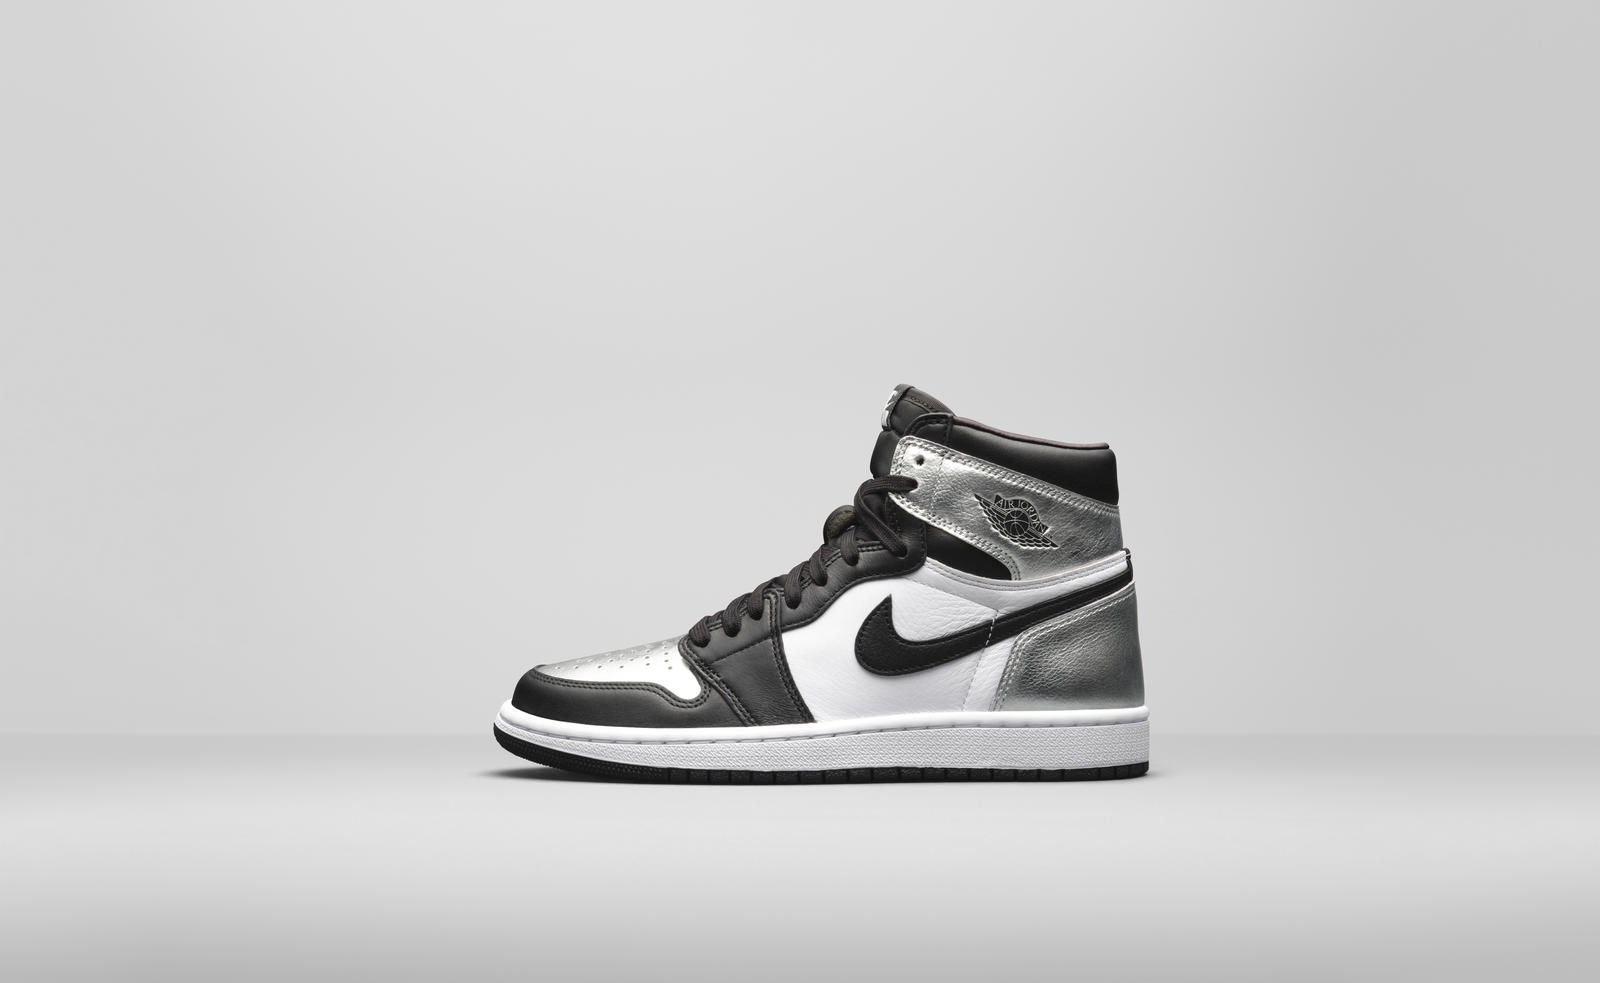 Women's Air Jordan I HI OG